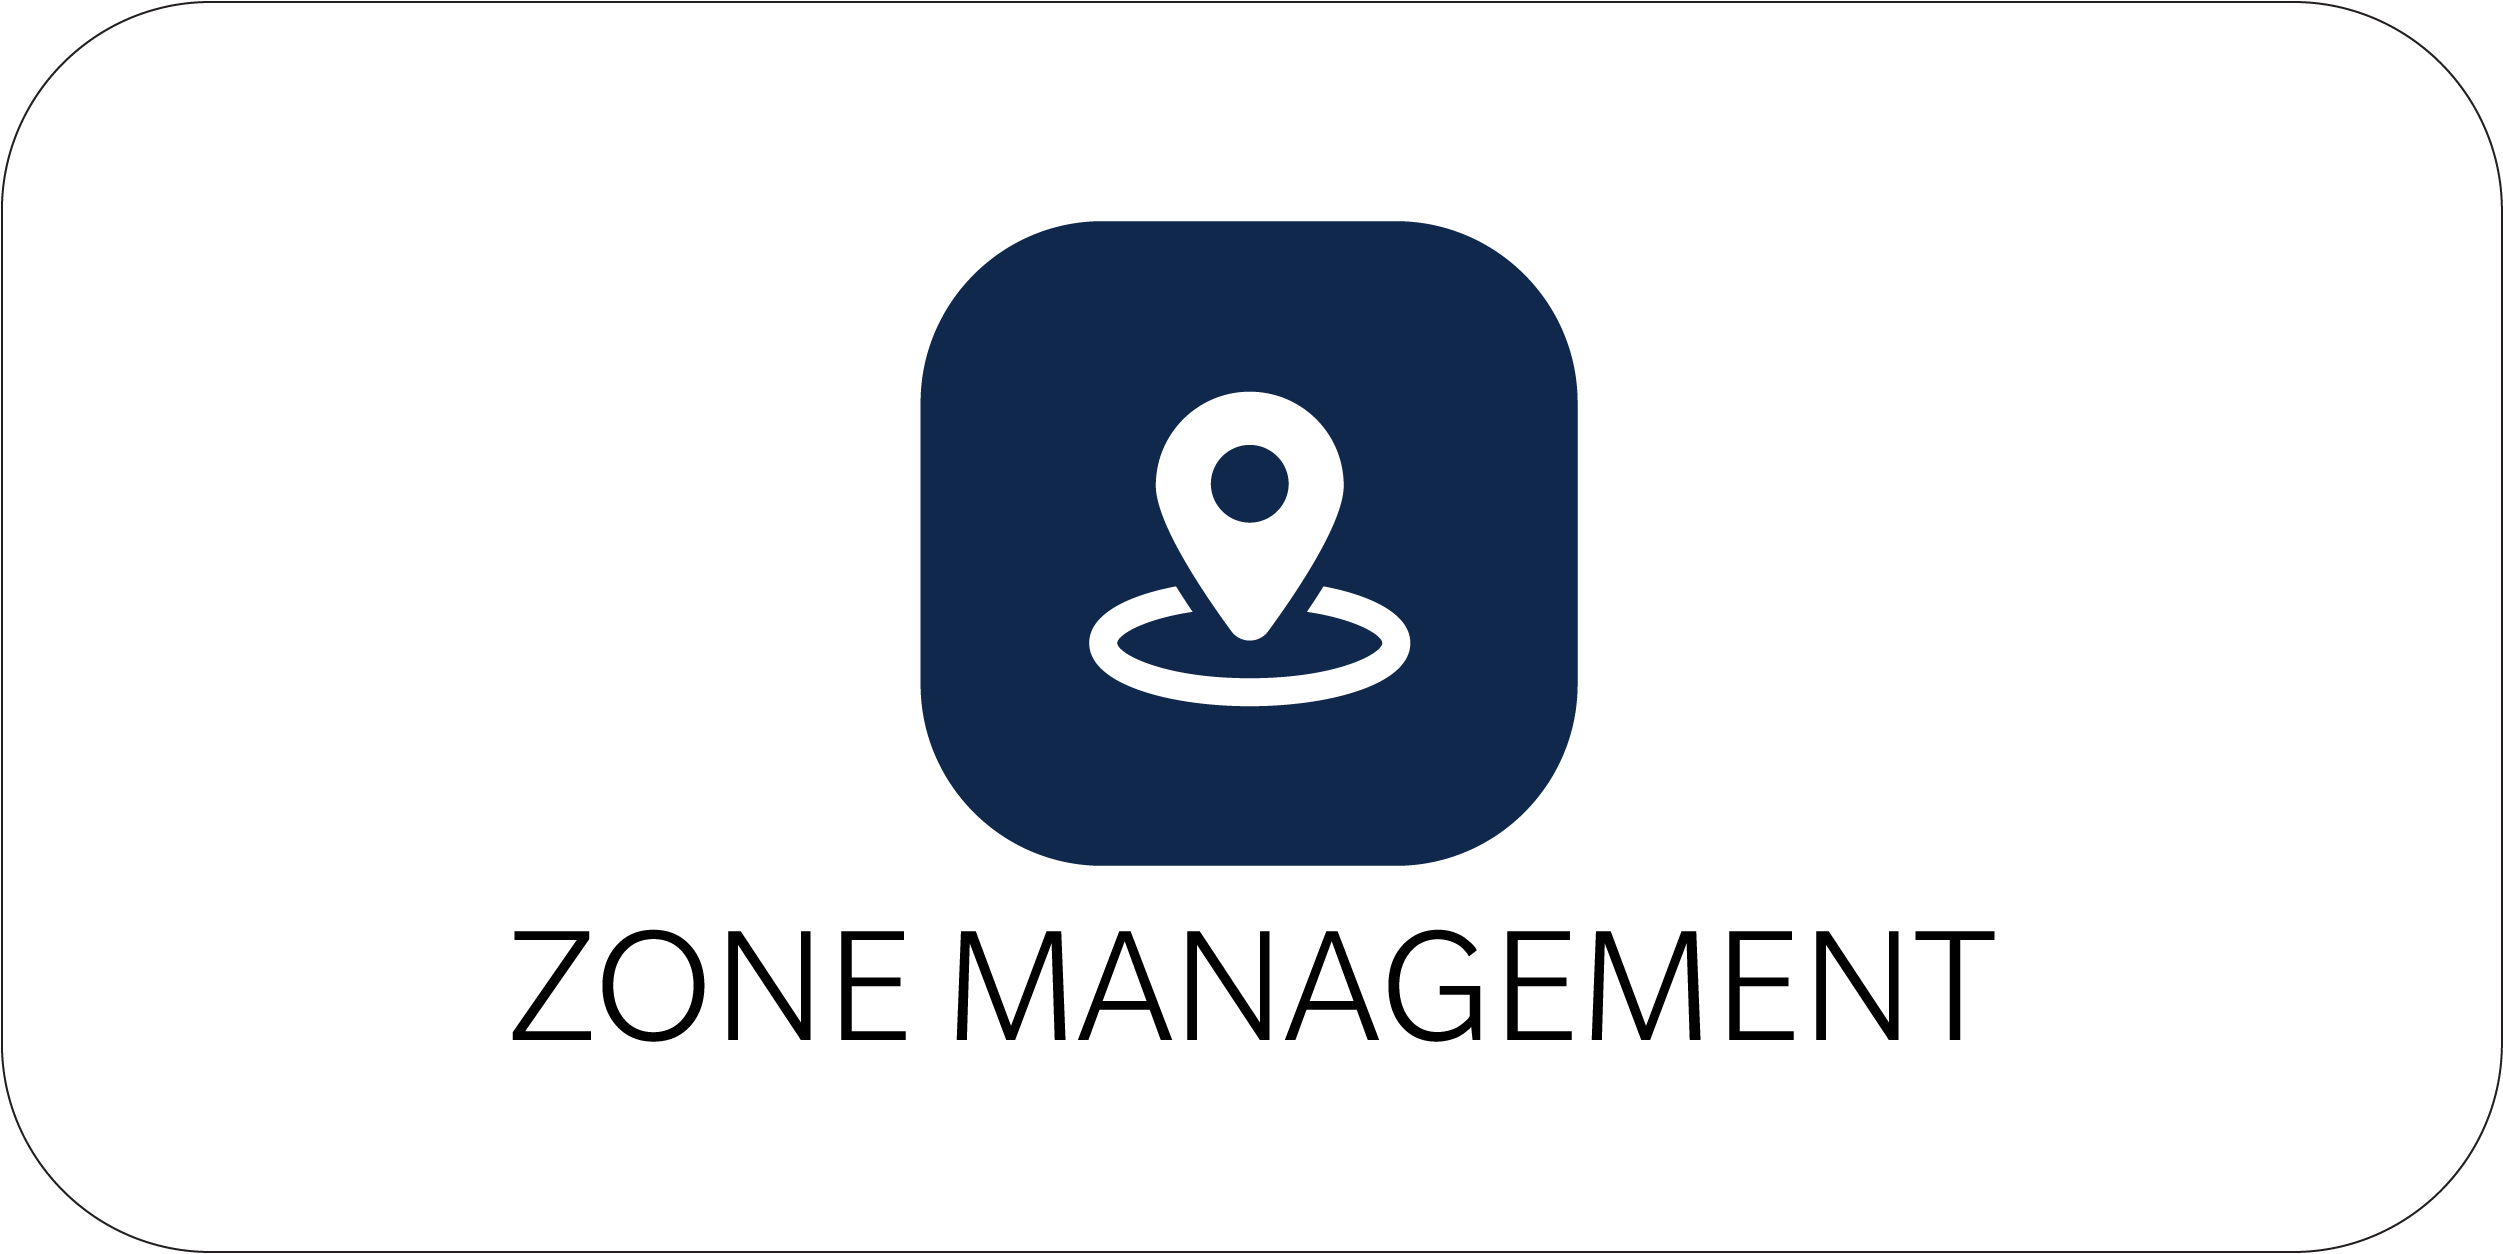 Links to Zone Management